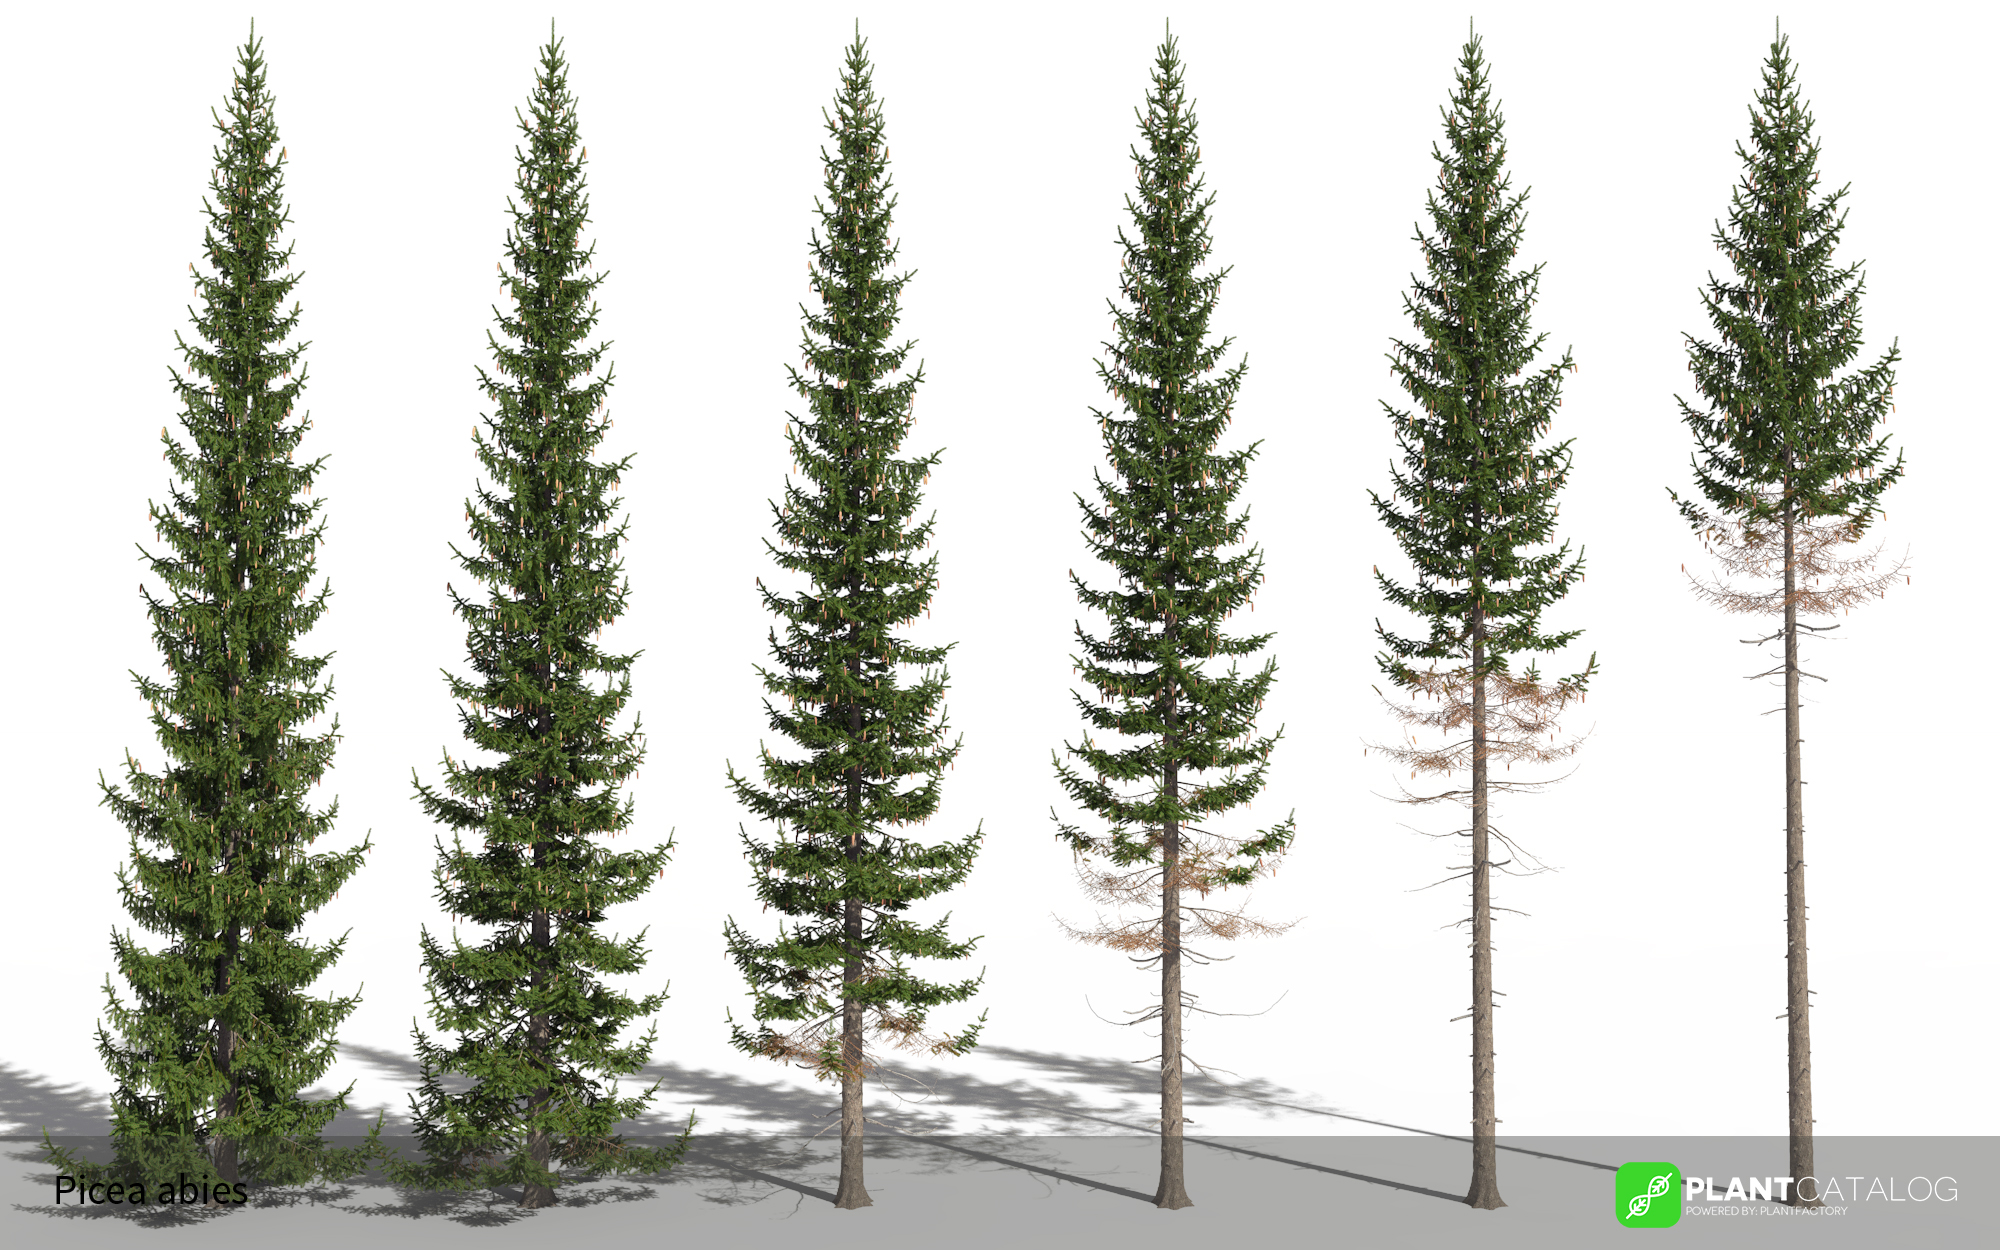 3D model of the Norway spruce - Picea abies - from the PlantCatalog, rendered in VUE